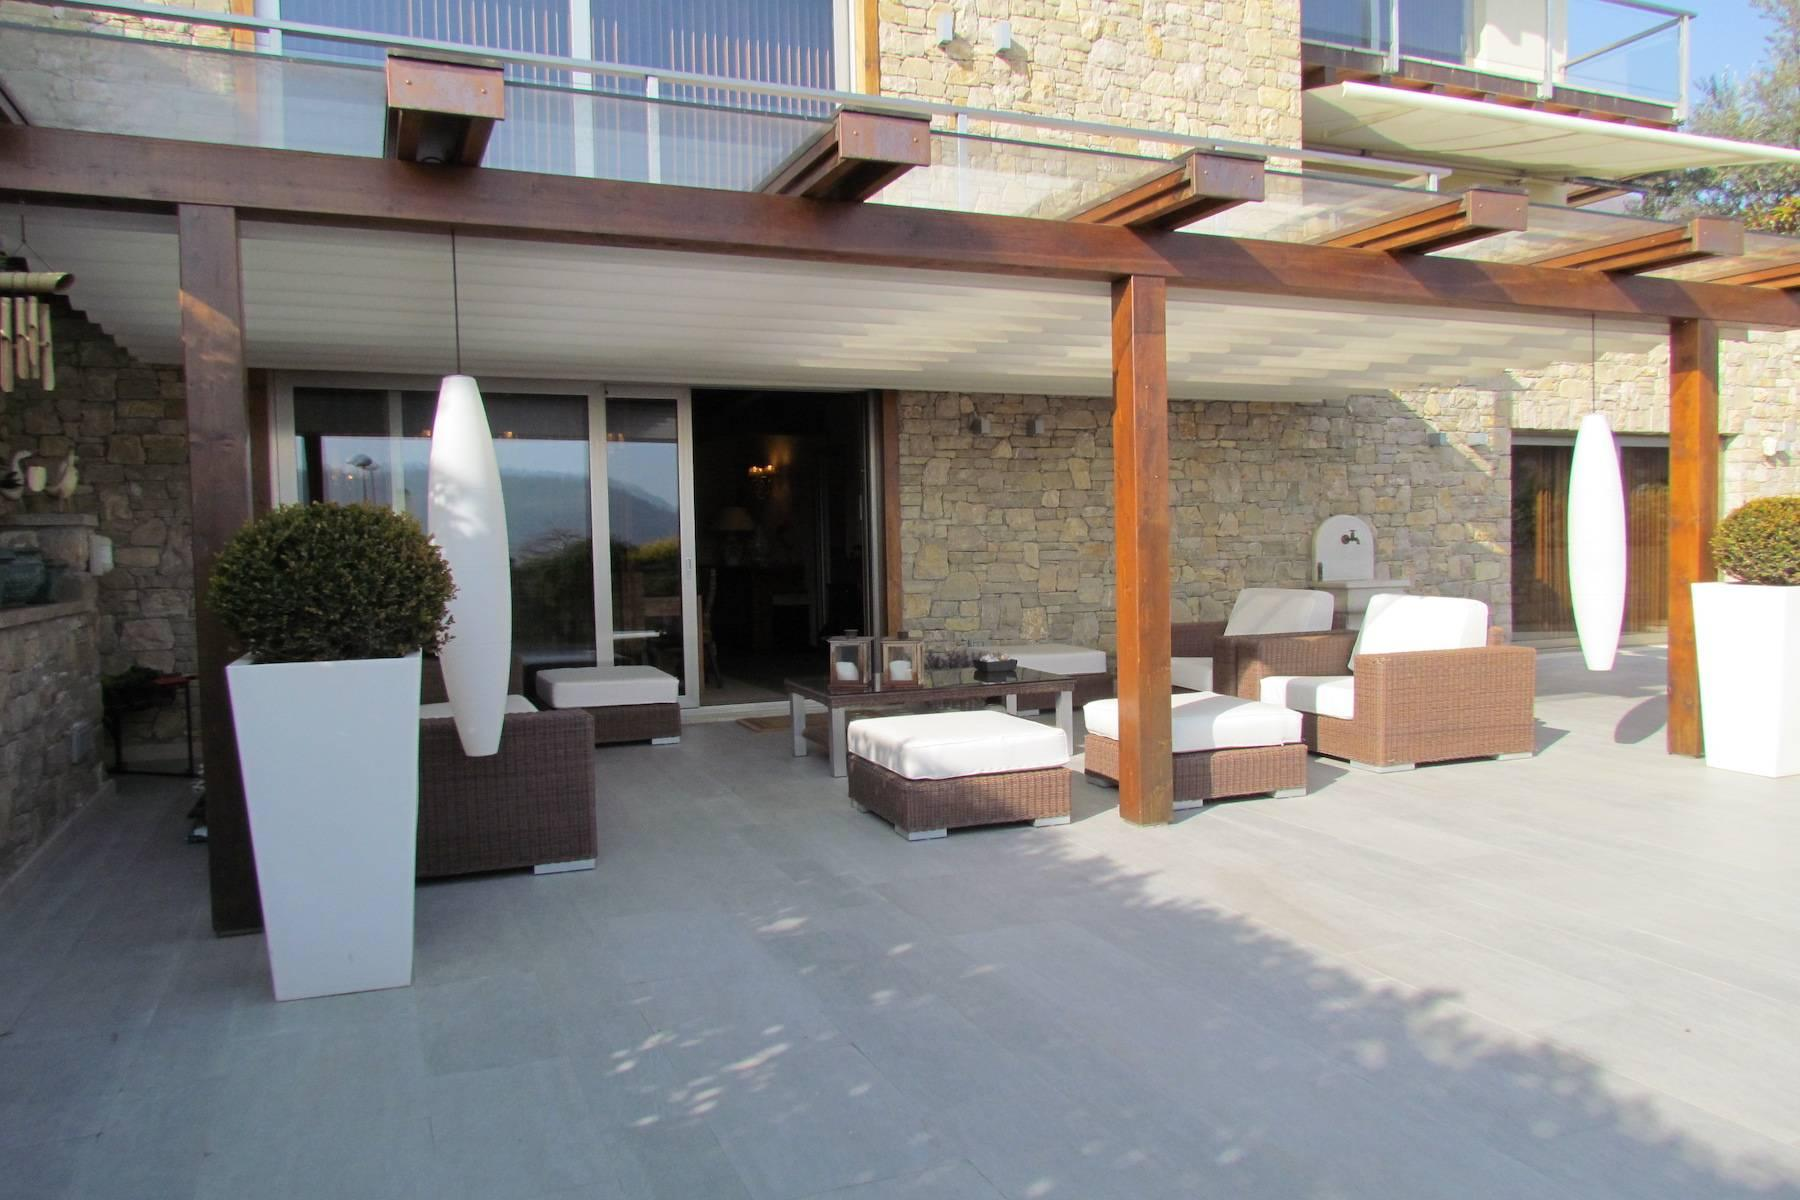 Modern villa a few minutes away from Bergamo - 15